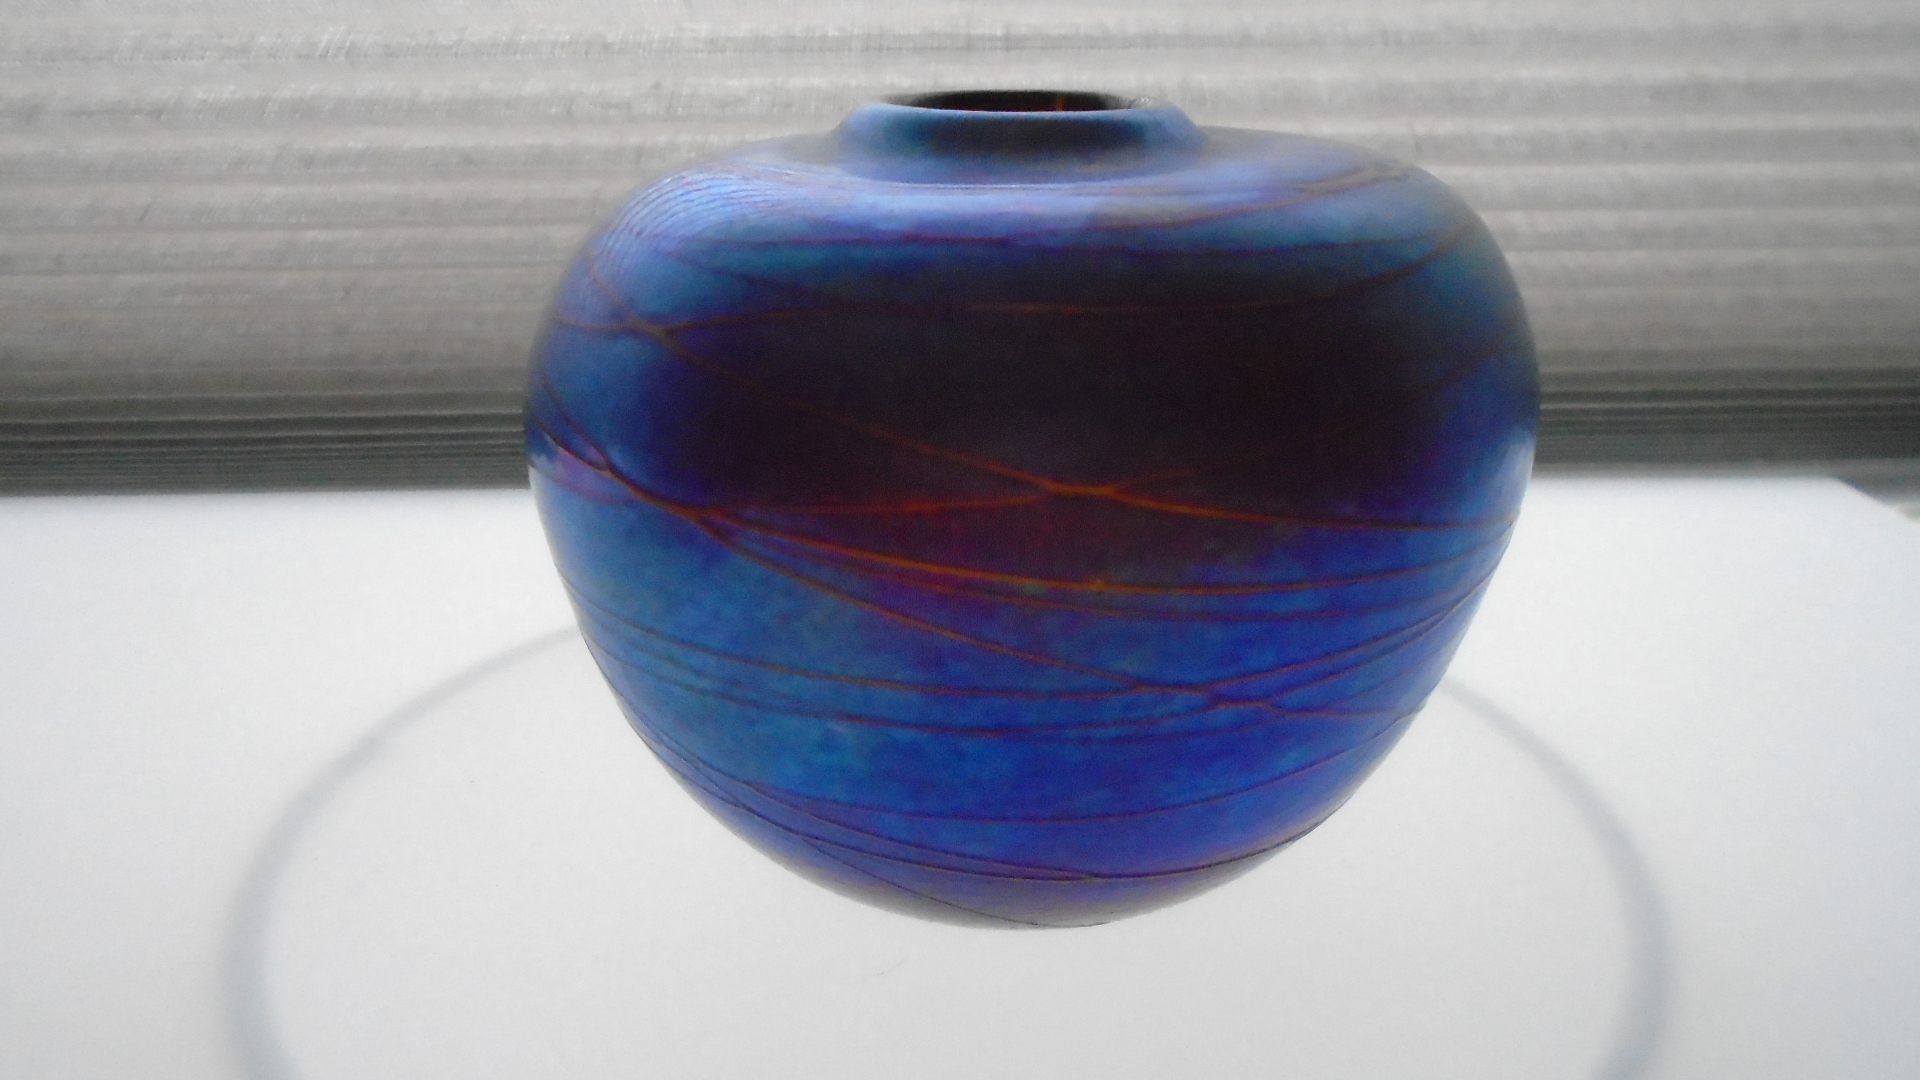 Stunning example of English Glass maker Siddy Langley's work in the form of a 1975 vintage blue iridescent narrow necked vase.